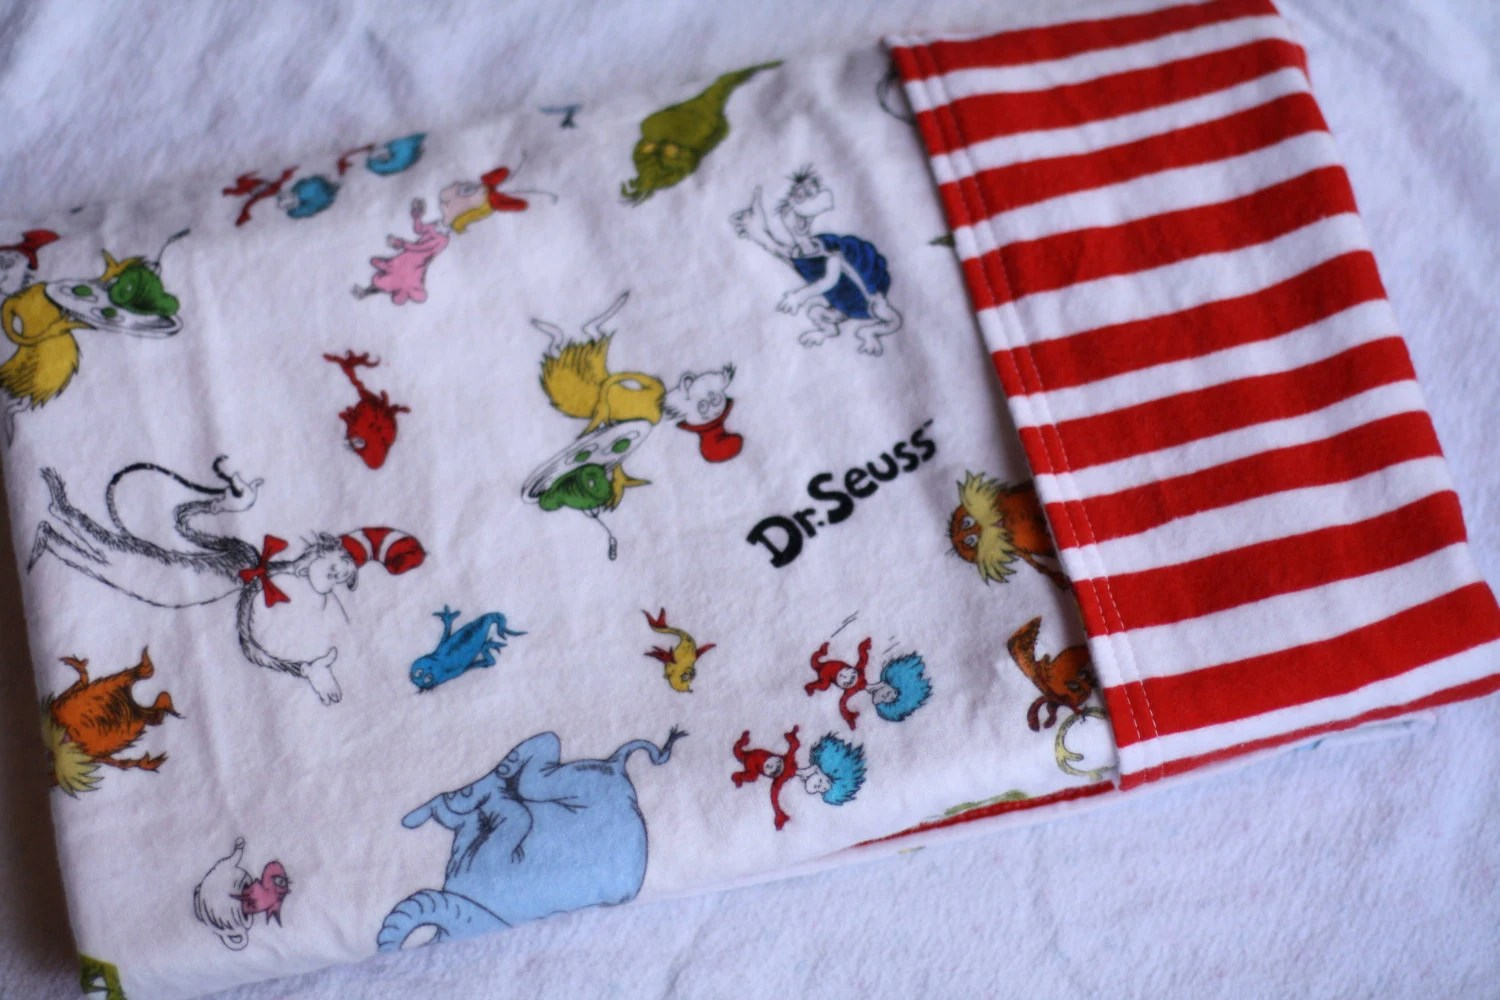 Baby Receiving Blanket - Oversized Double-Sided Flannel Baby Receiving Blanket - Dr. Seuss Characters and Dr. Seuss Red Squiggle Stripe - FColenbranderDesigns